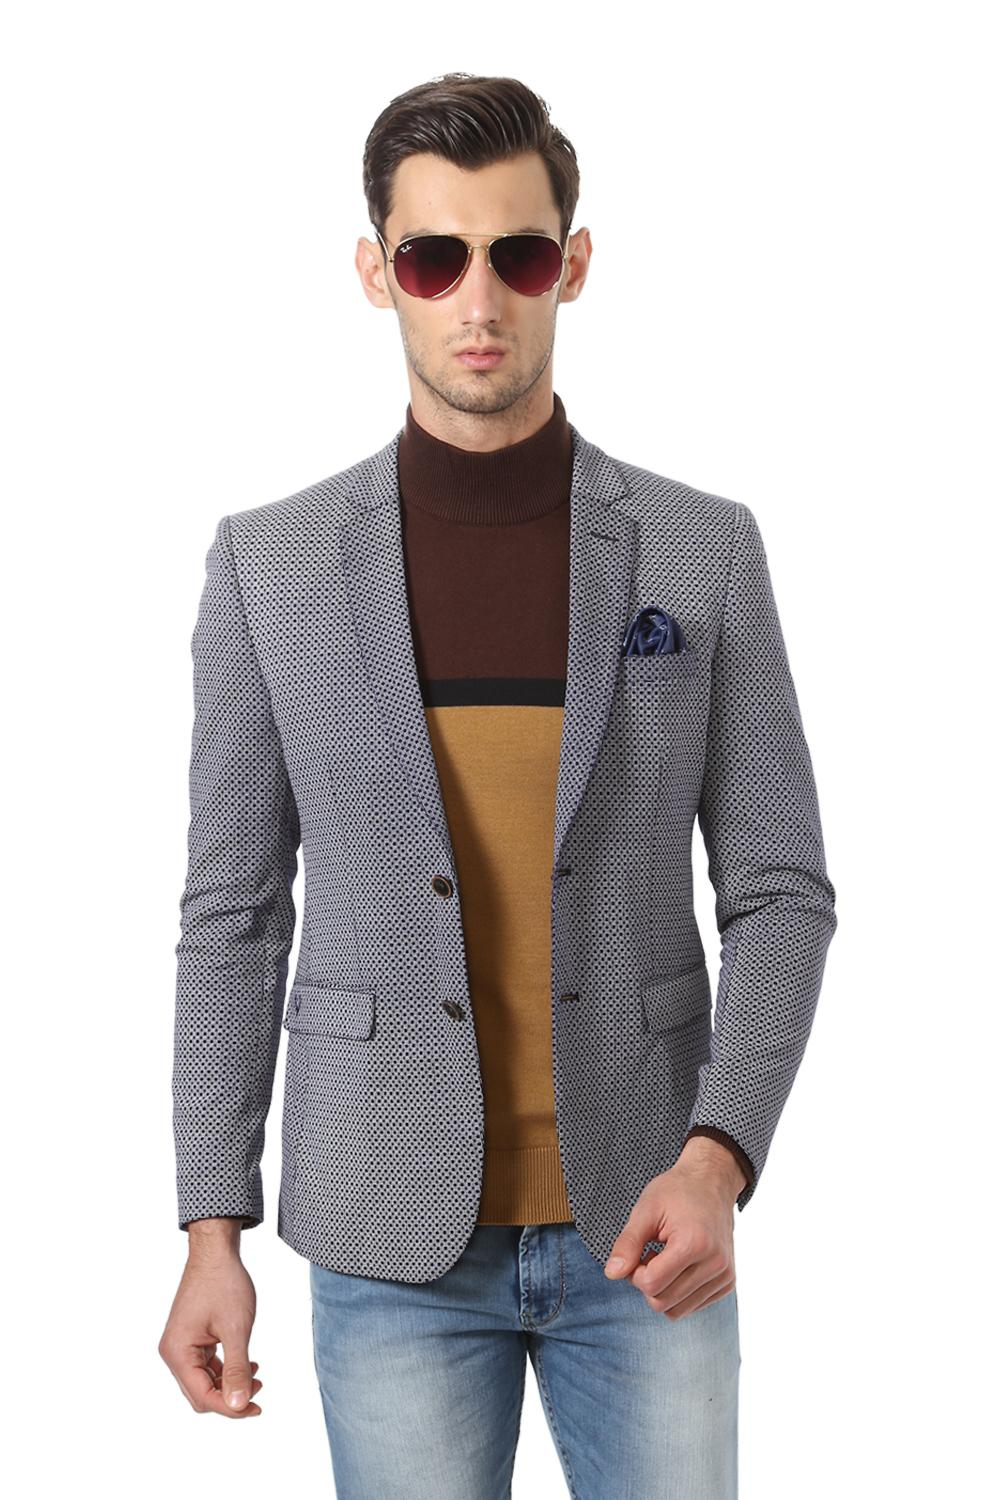 Buy Mens Allen Solly Blazer, Suits Online in India | Allensolly.com